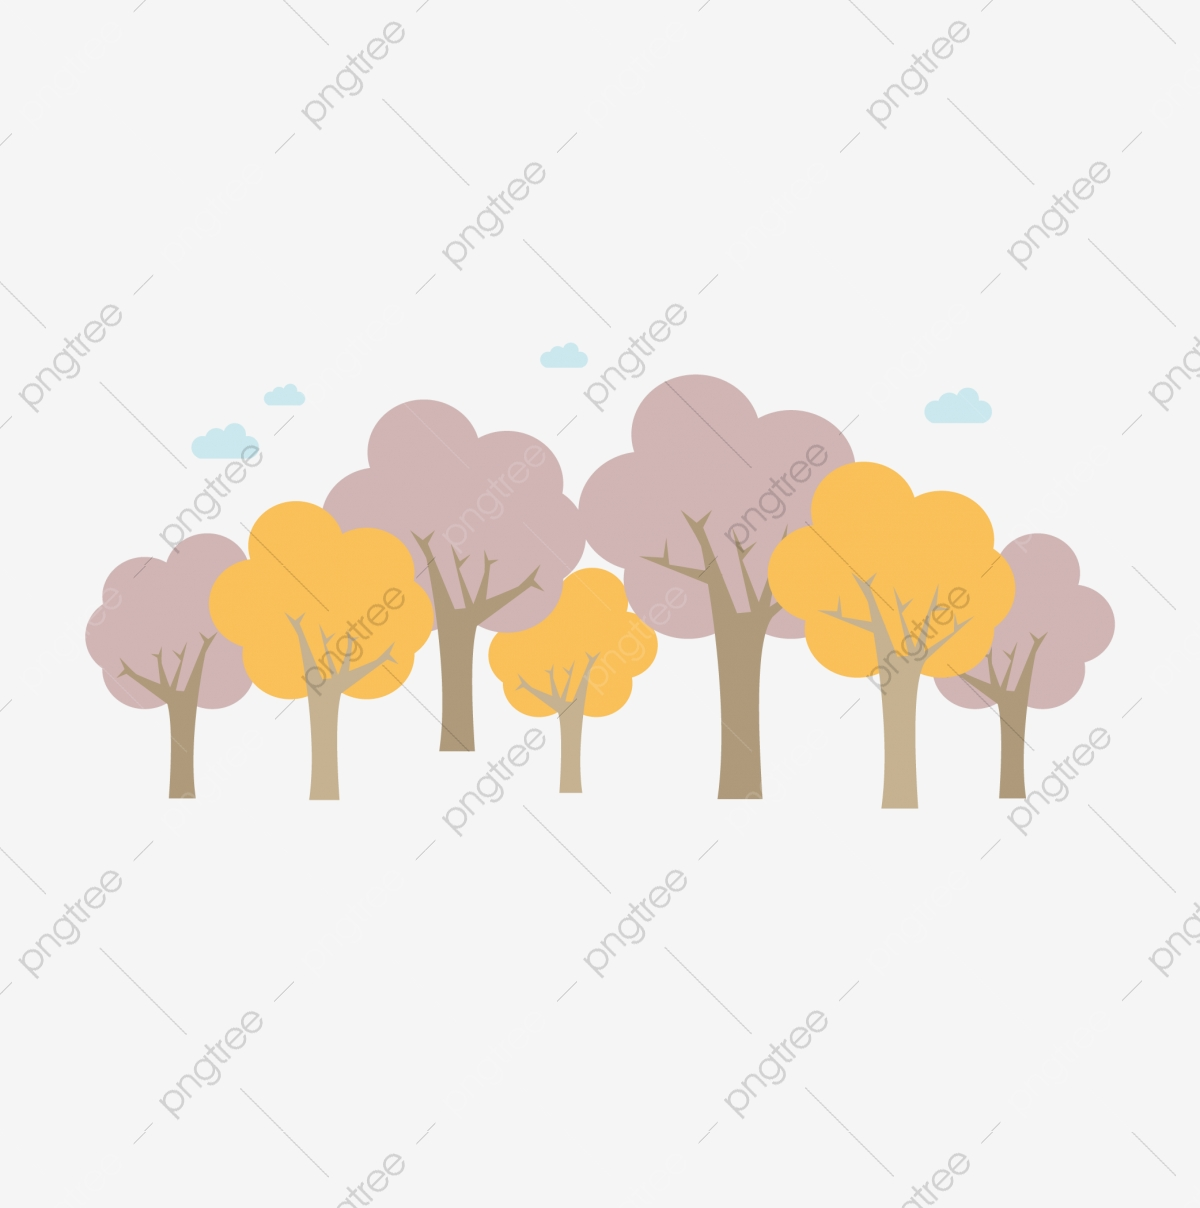 Dense forest animals clipart in ai, svg, eps or psd | download more vectors, cliparts and. Cartoon Cartoon Tree Cartoon Woods Forest Dense Dense Woods Autumn Color Png And Vector With Transparent Background For Free Download